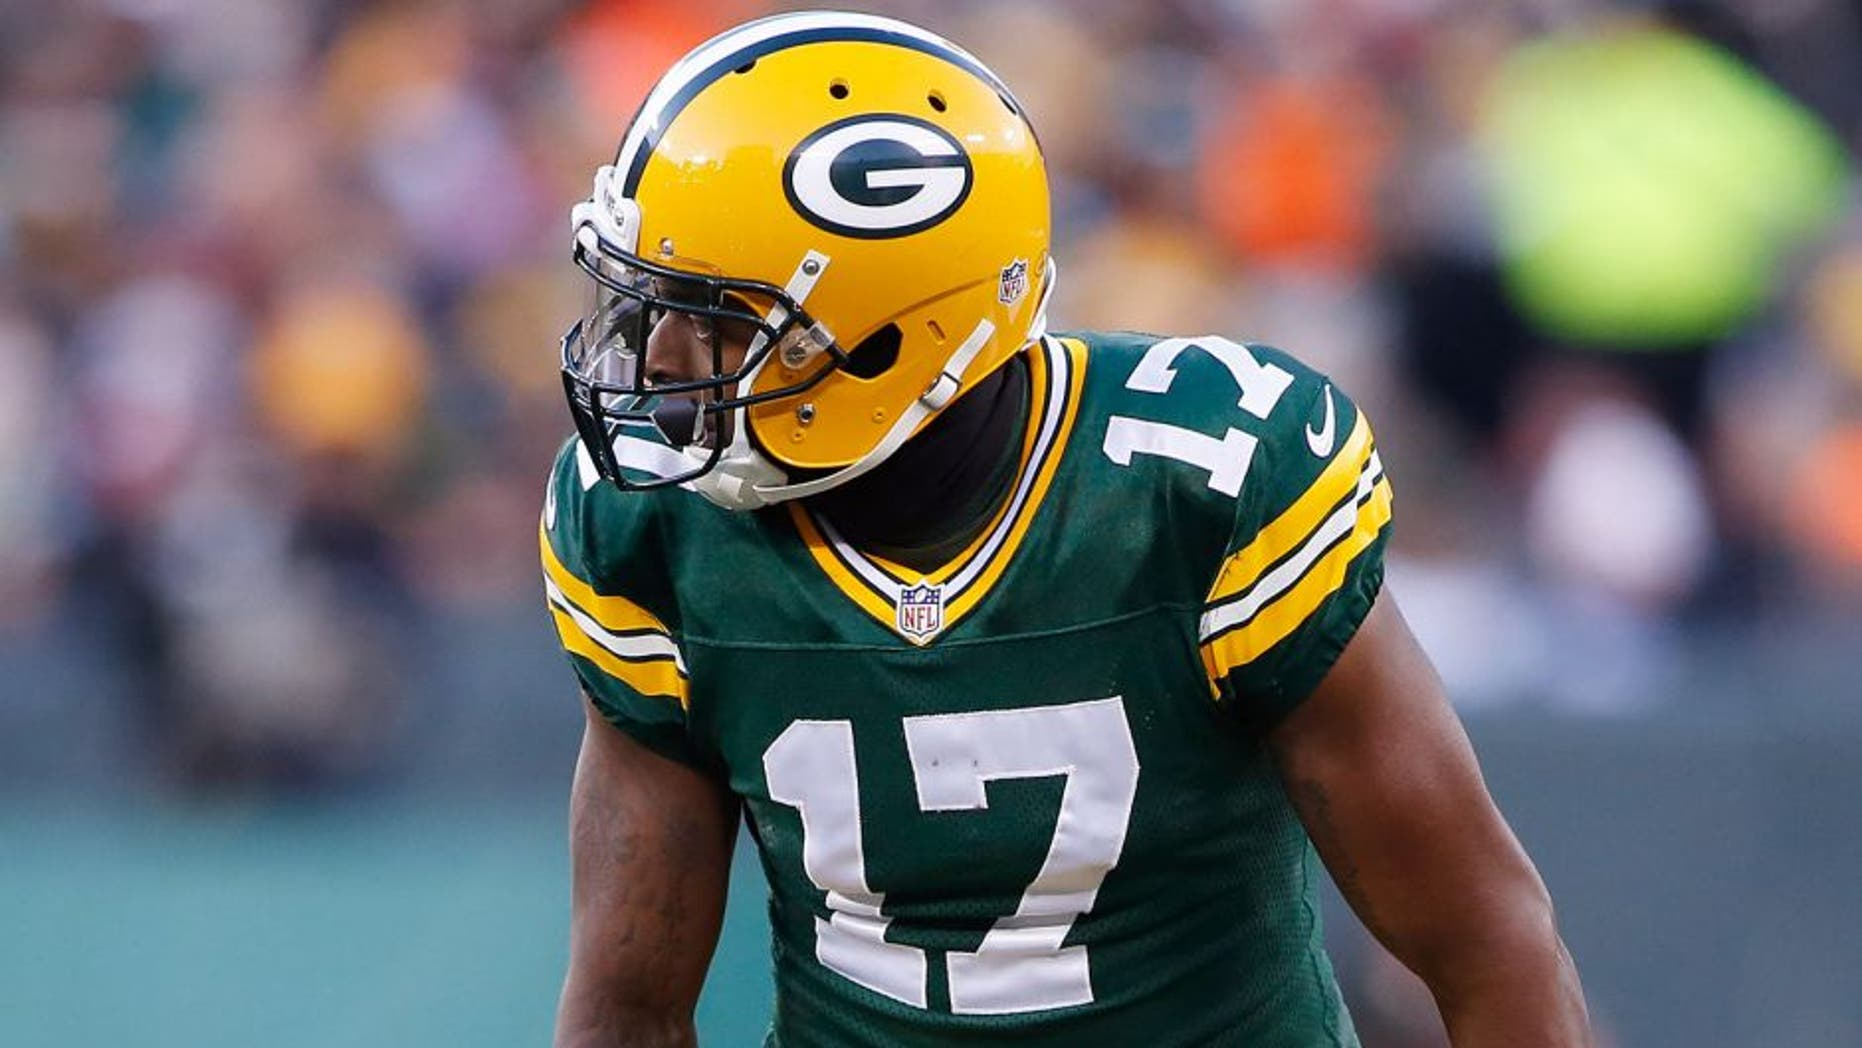 Nov 30, 2014; Green Bay, WI, USA; Green Bay Packers wide receiver Davante Adams (17) during the game against the New England Patriots at Lambeau Field. Mandatory Credit: Chris Humphreys-USA TODAY Sports